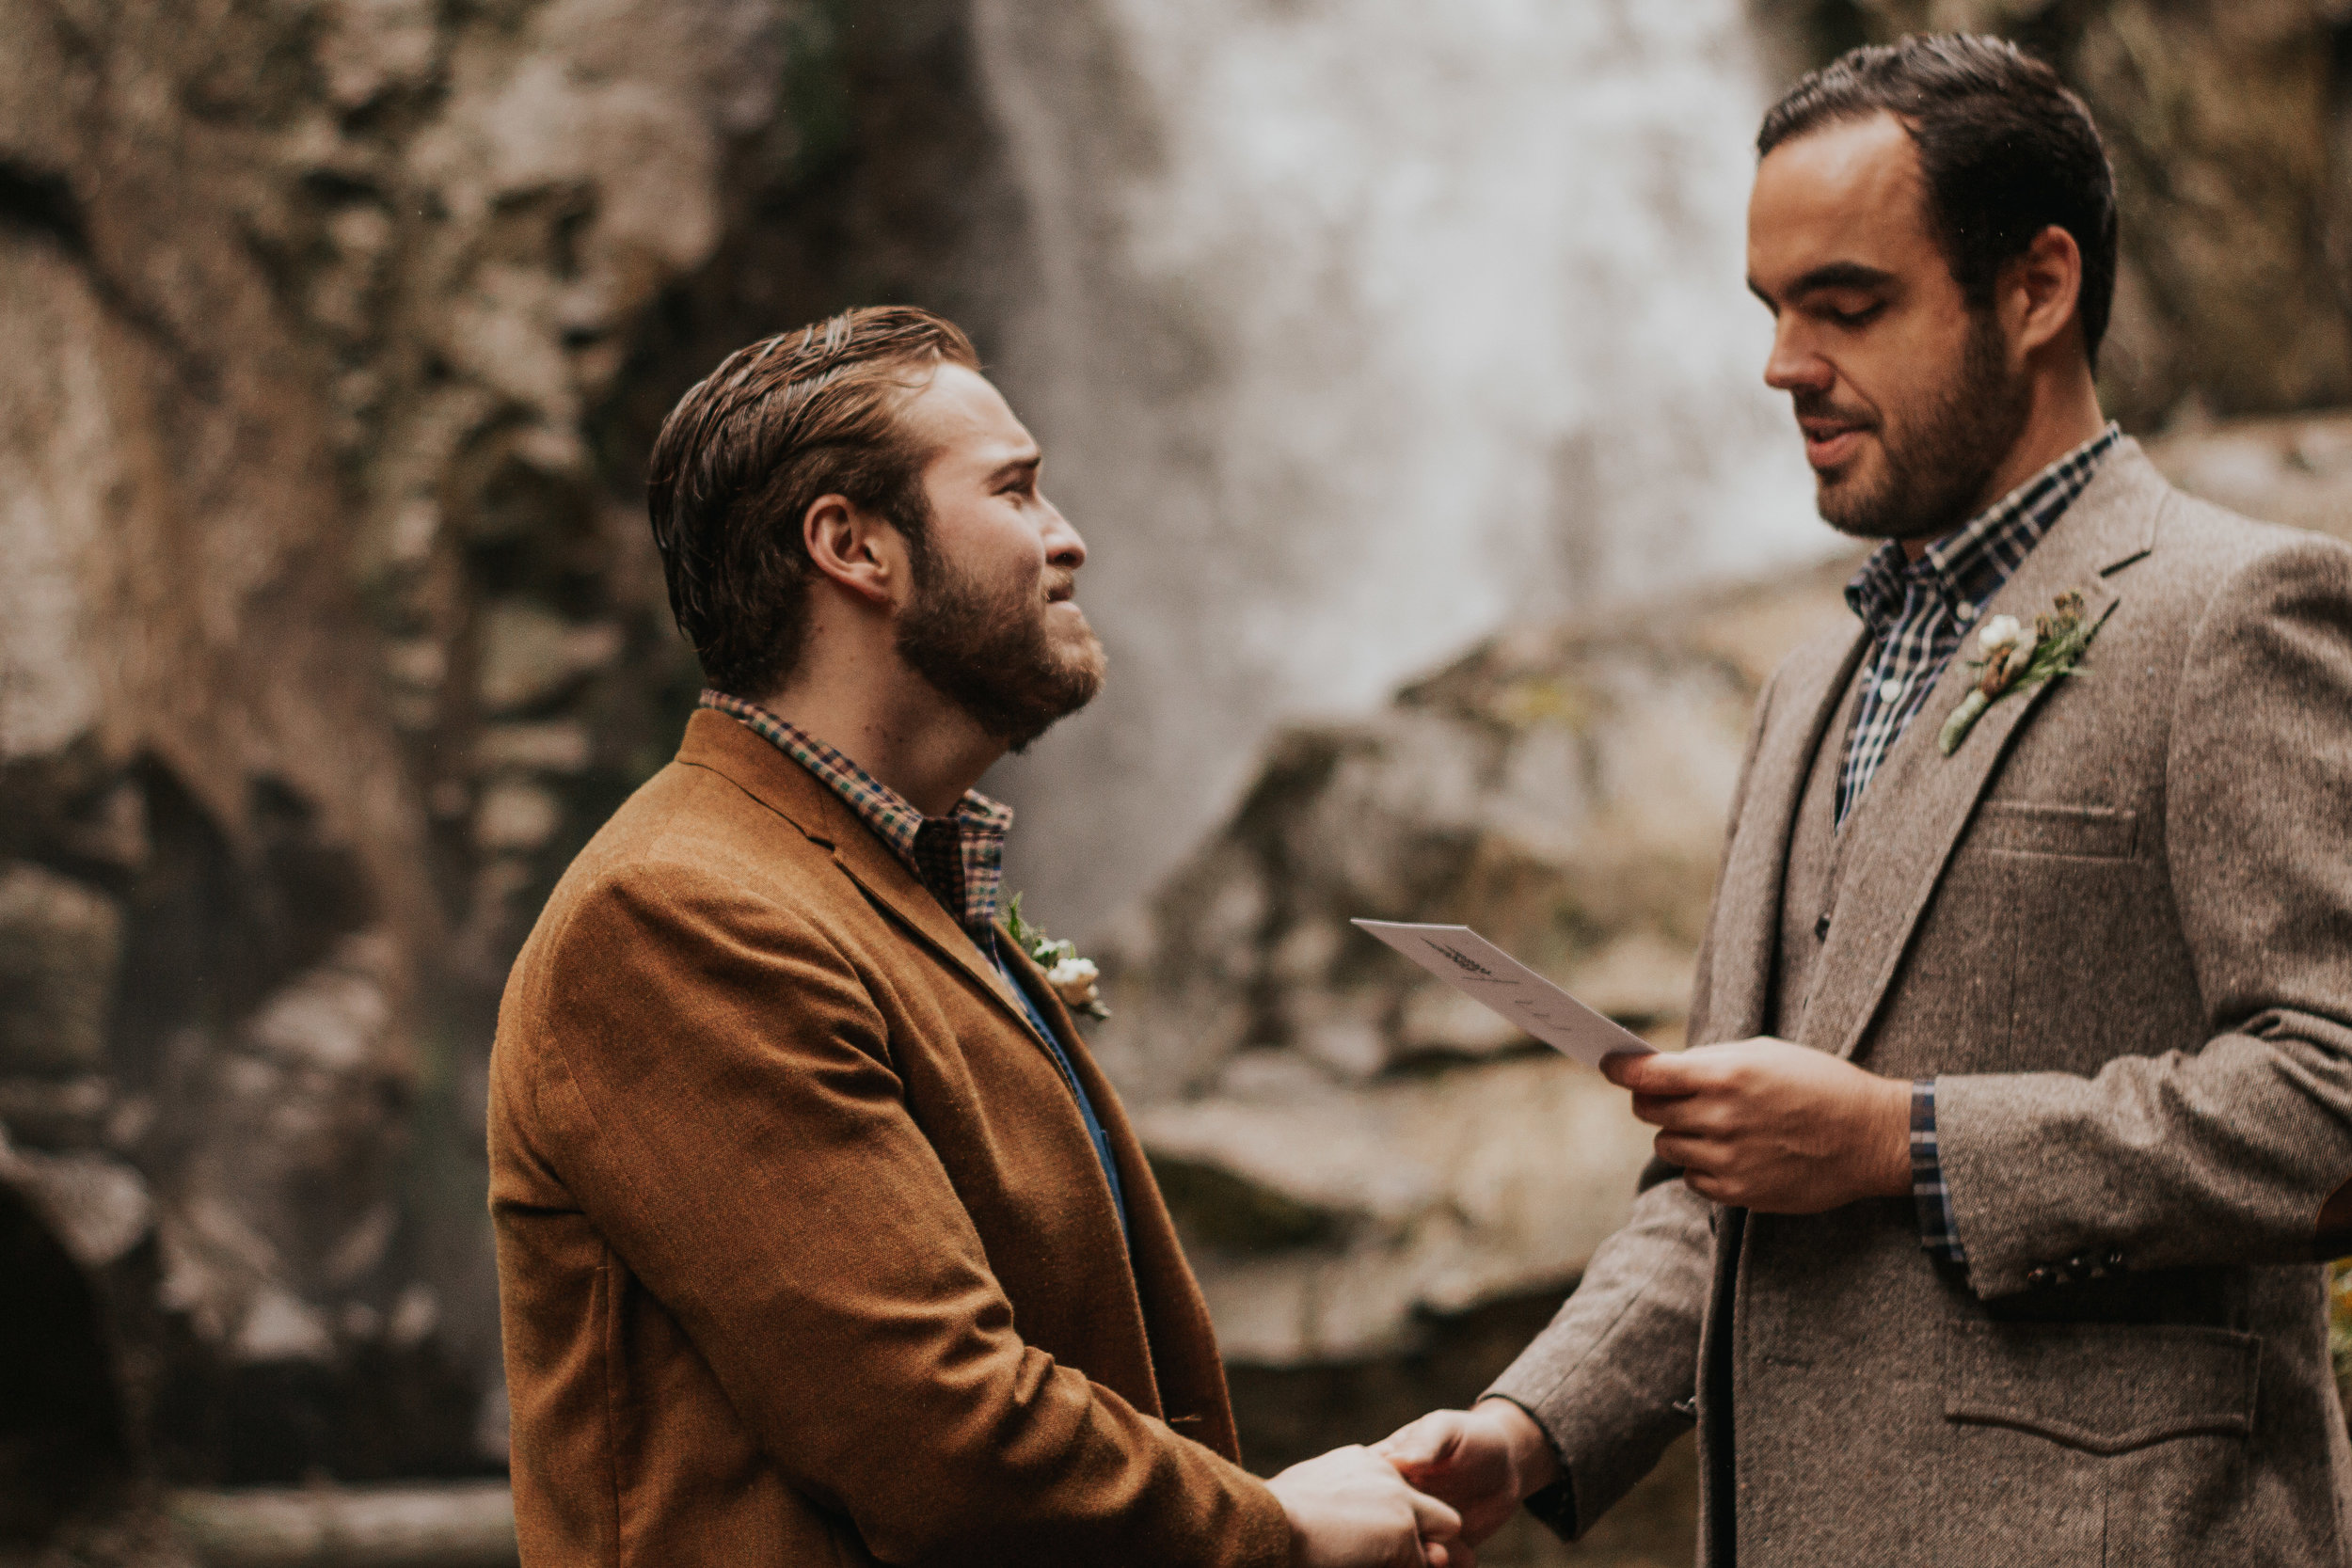 Oregon Waterfall Elopement - Romance. Rainfall. Ruggedly handsome men. Mix that all together for an epic Oregon Waterfall Elopement in the woods with two Loverjacks!Read More